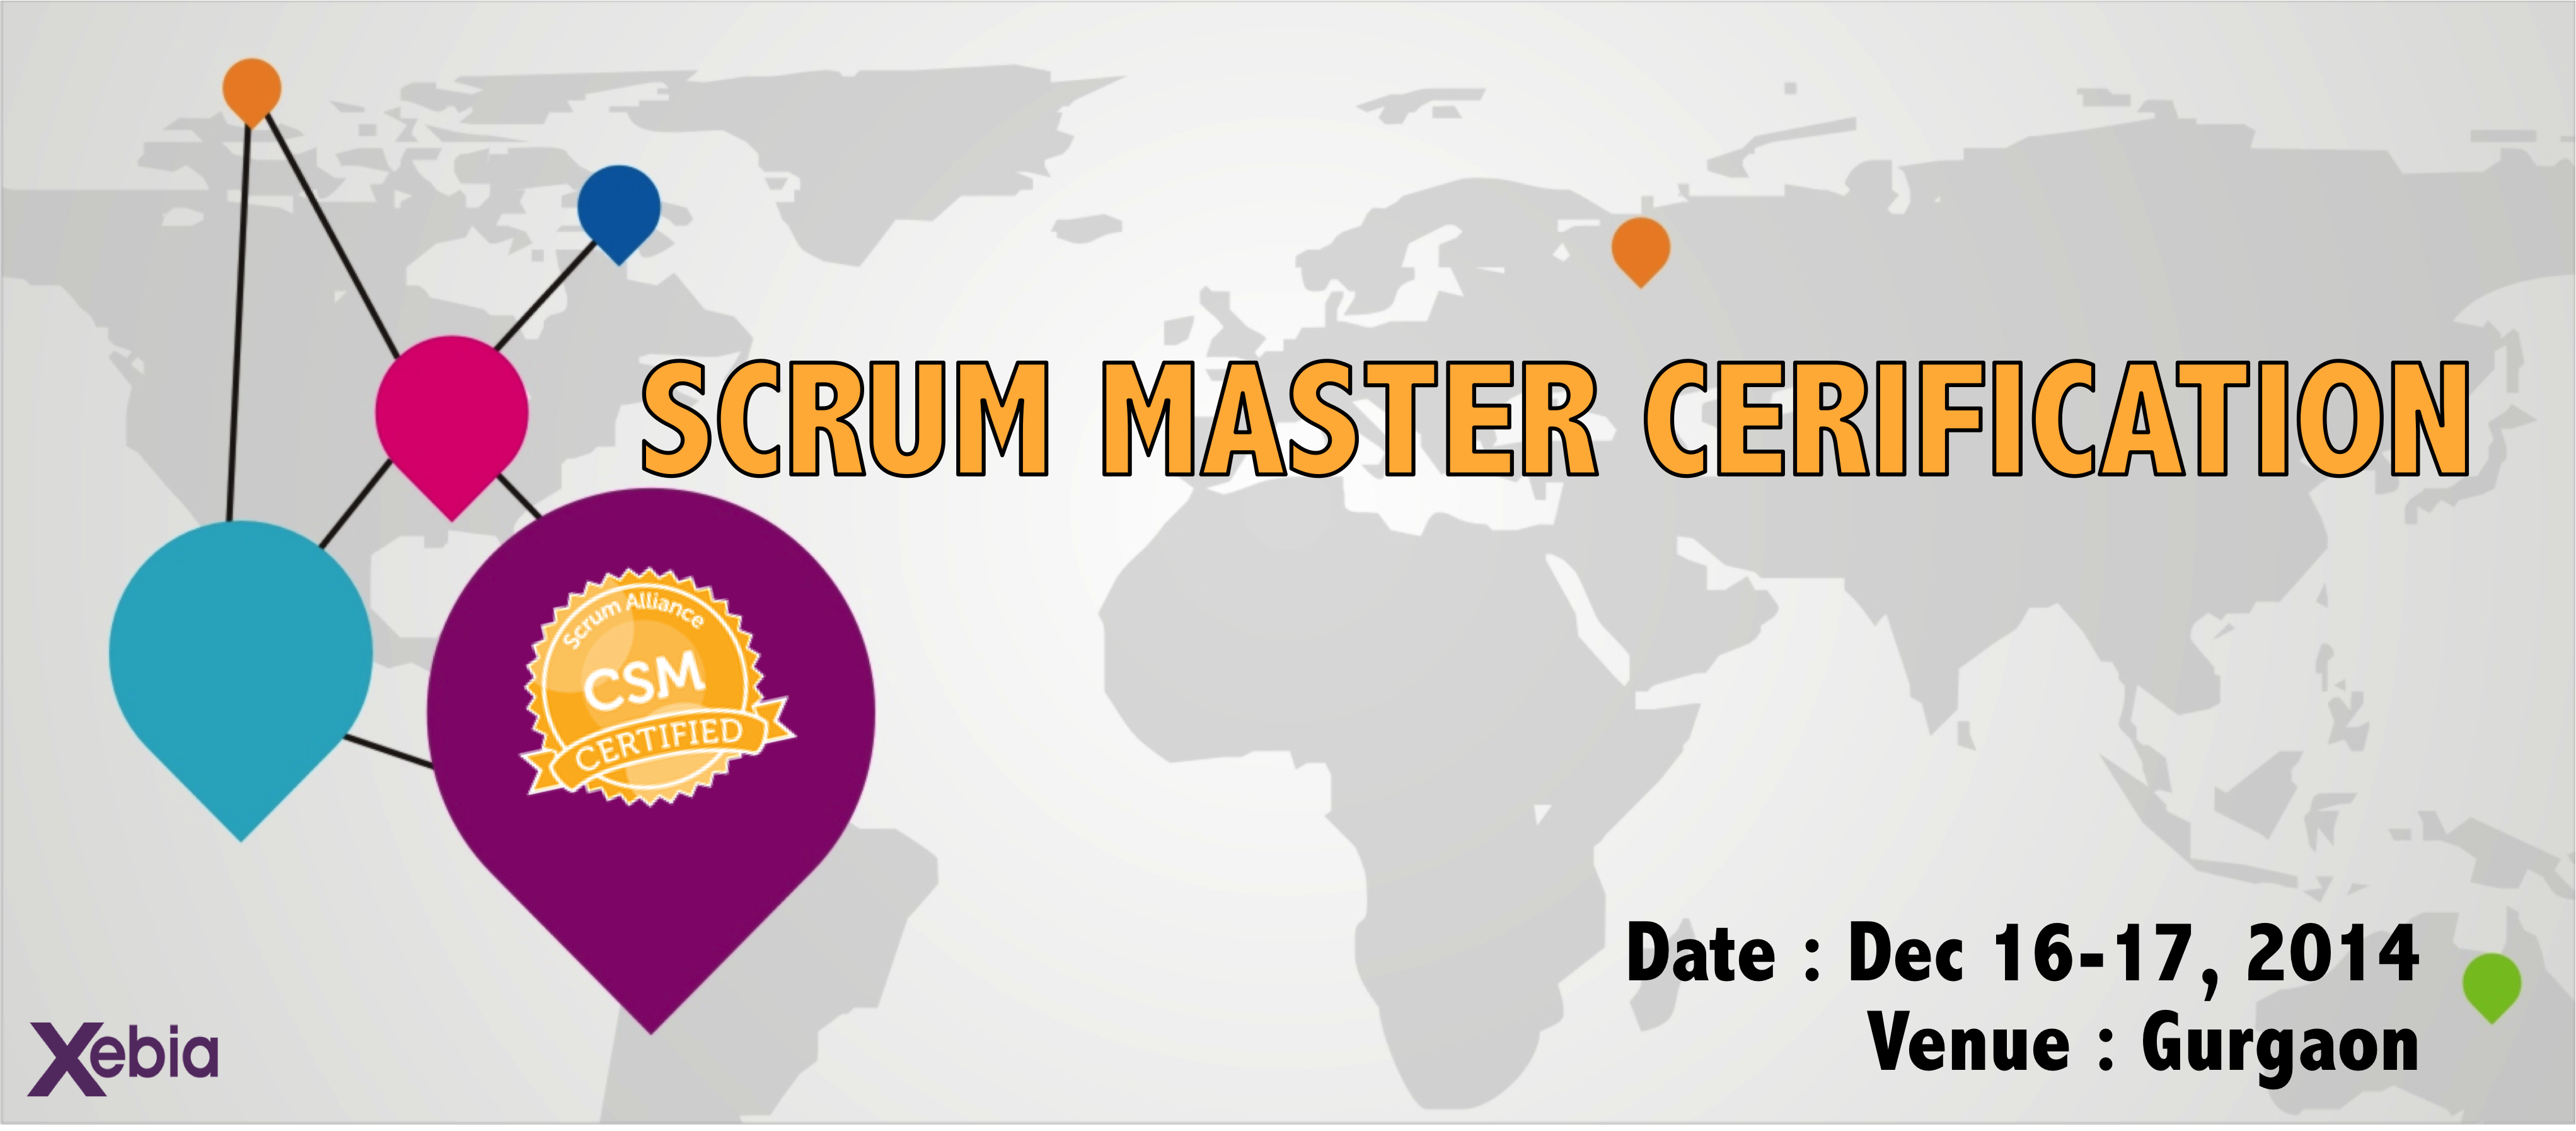 Scrum Master Certification  (CSM) - Gurgaon